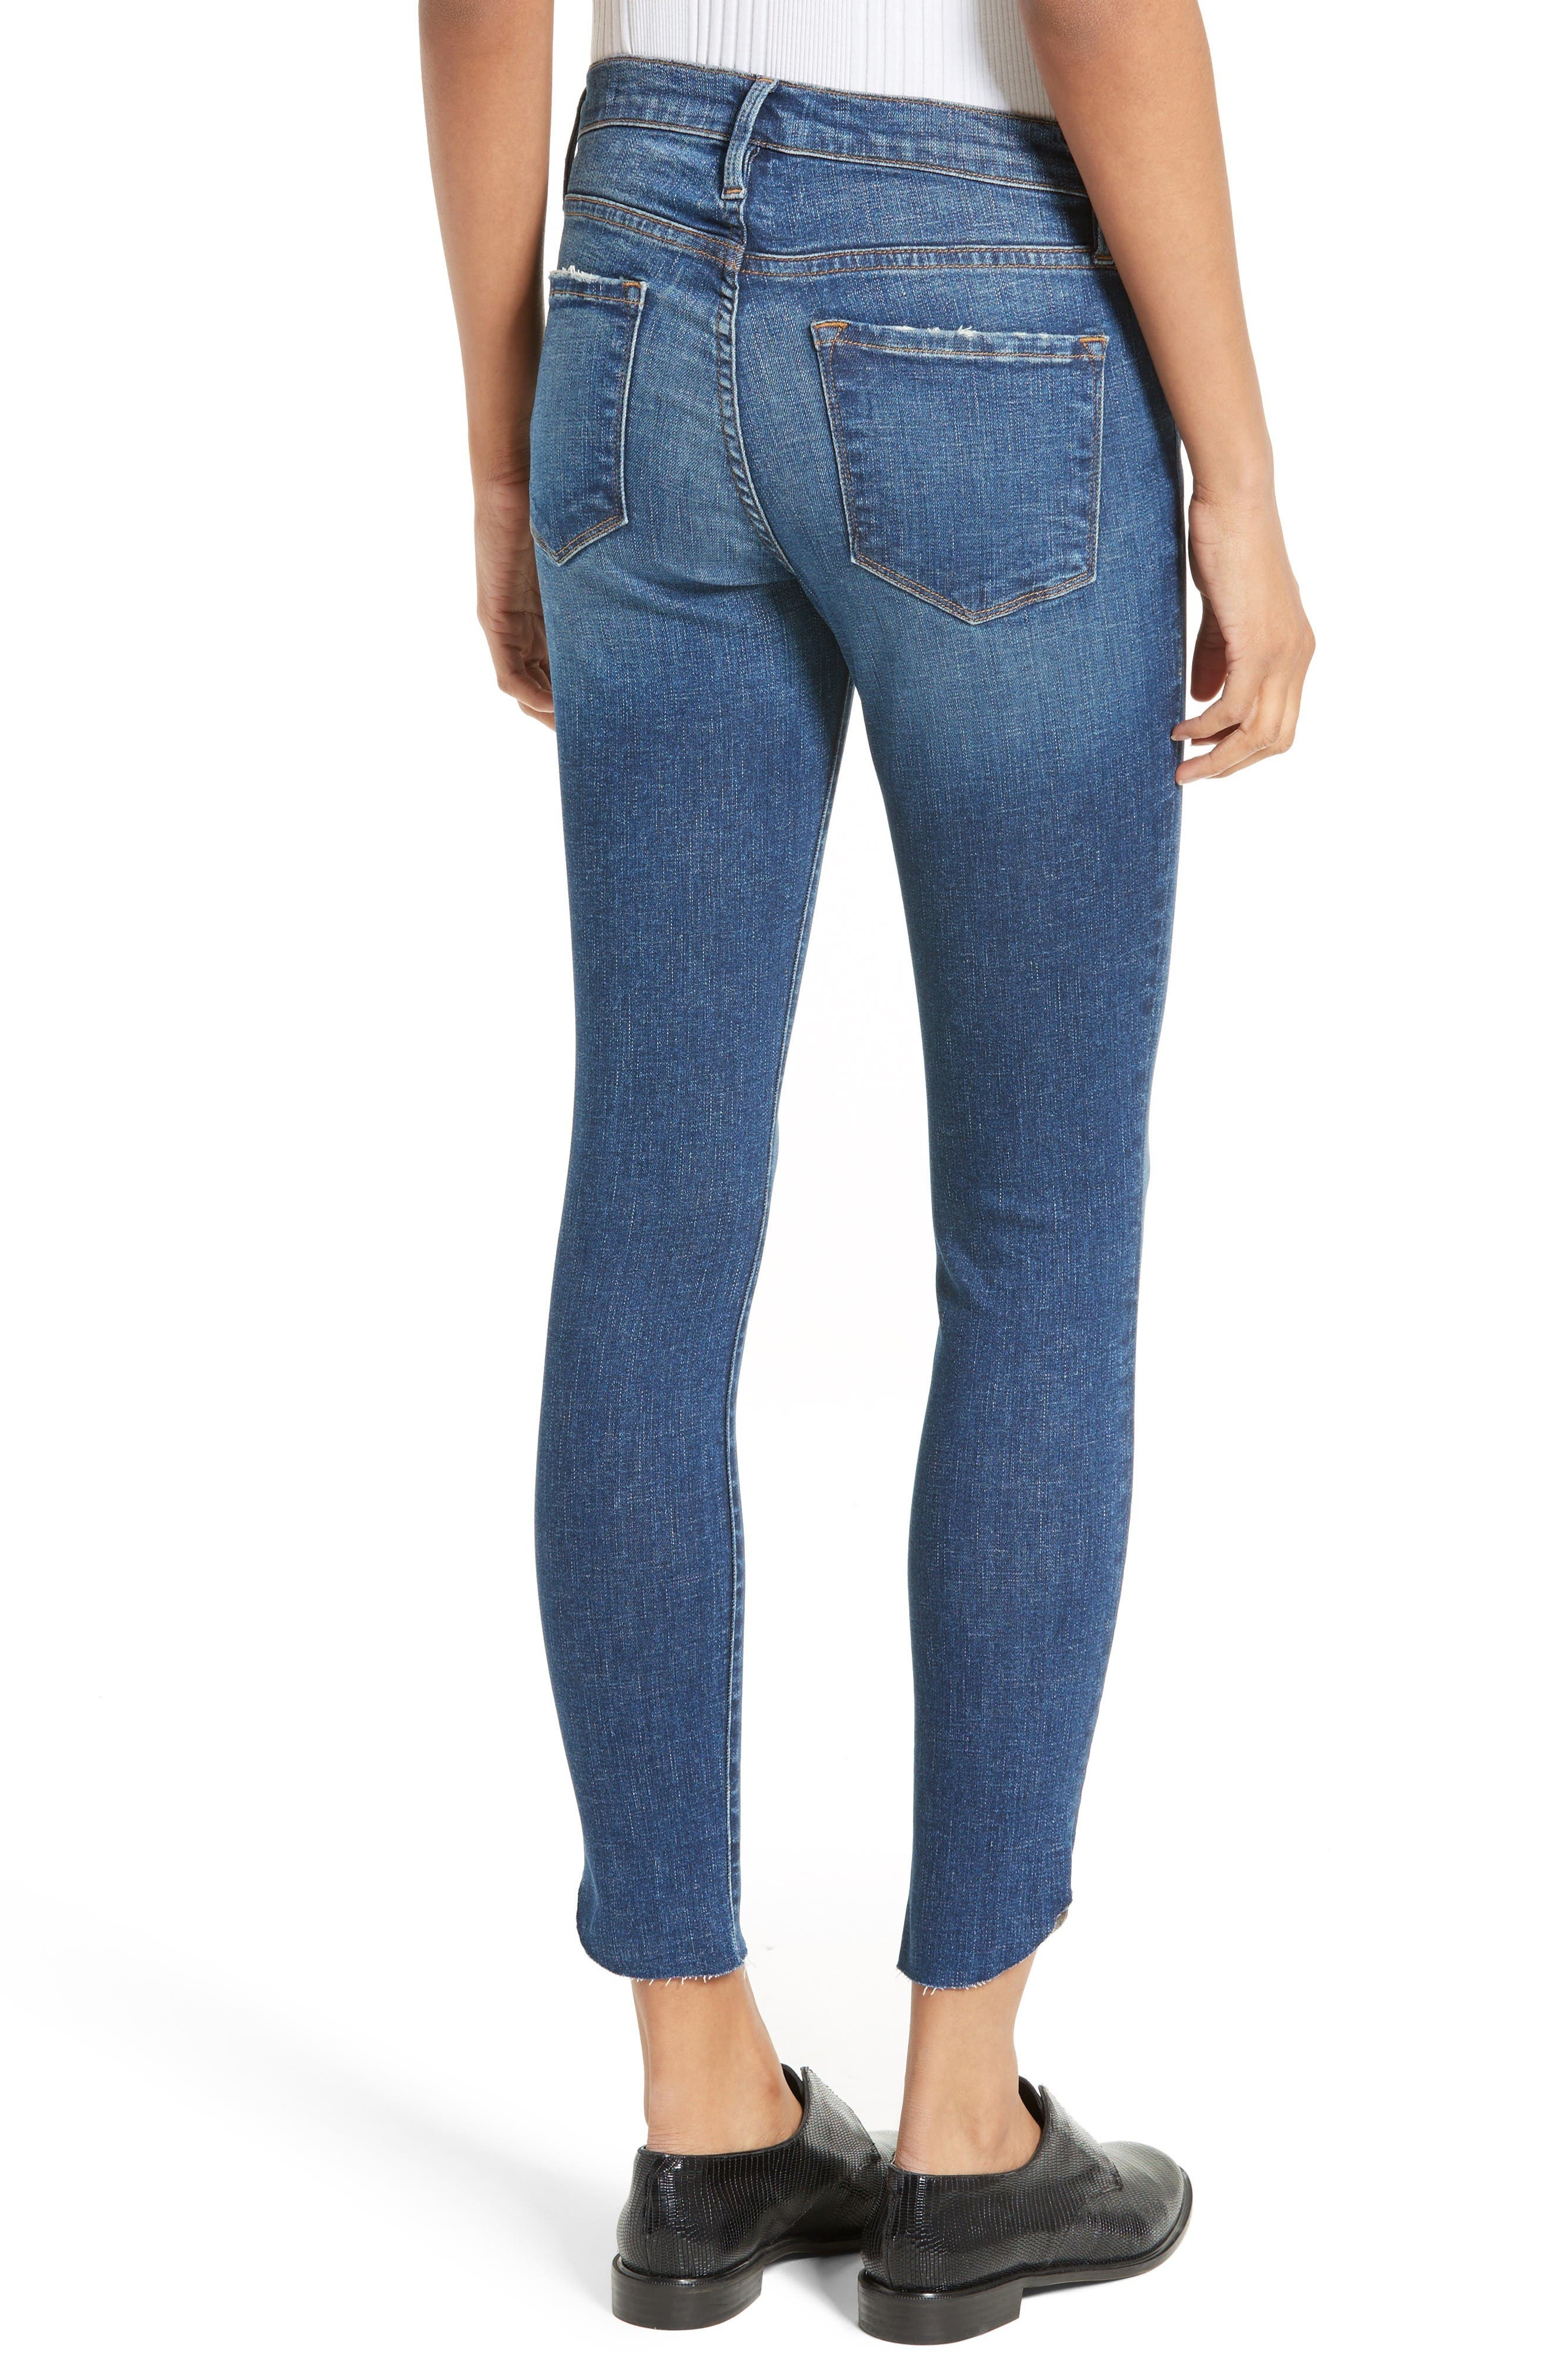 Alternate Image 2  - FRAME Le Skinny Raw Tulip Crop Jeans (York) (Nordstrom Exclusive)